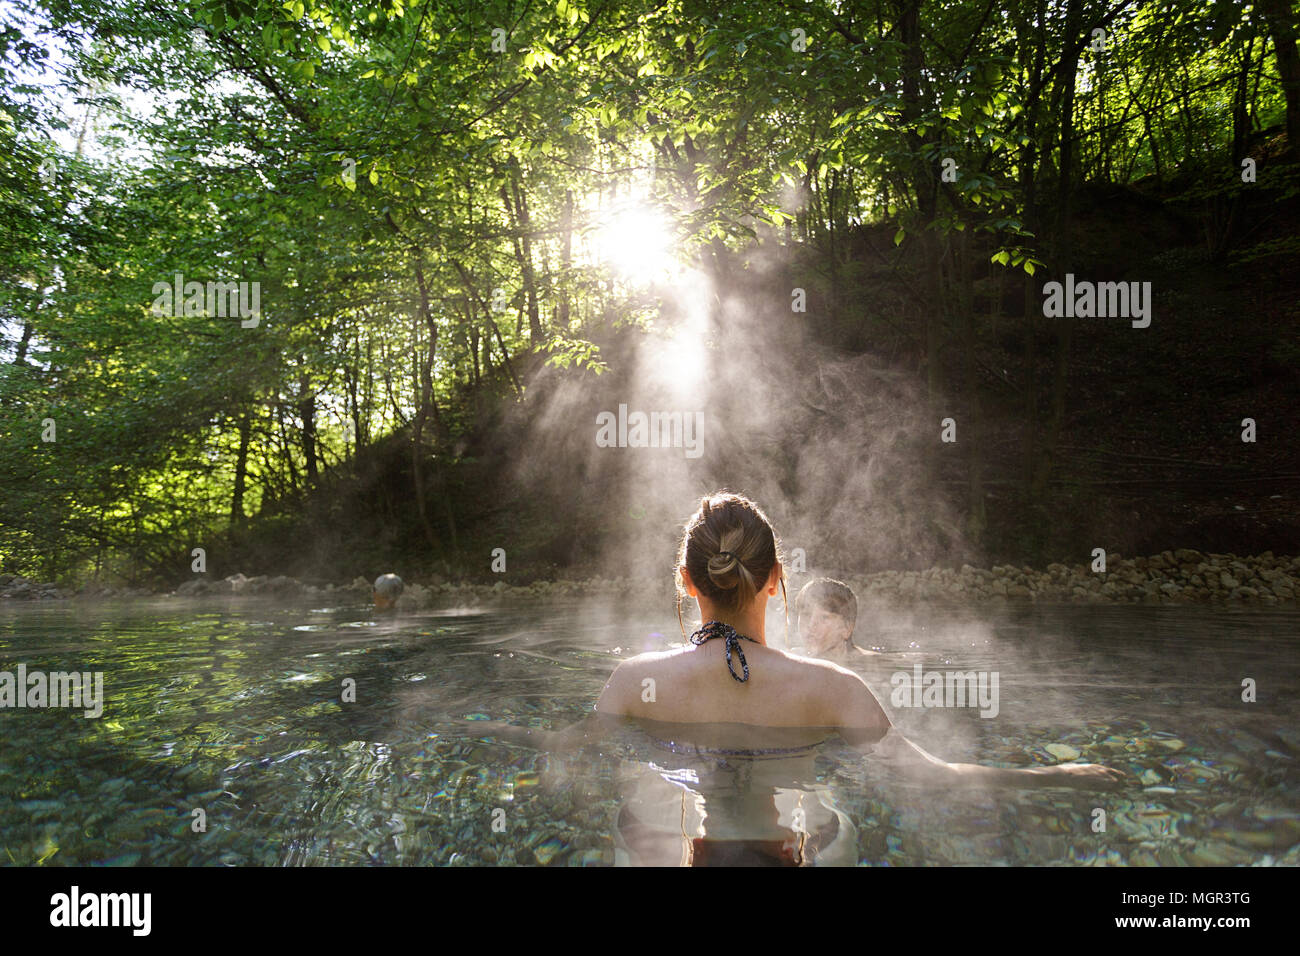 Woman relaxing in natural hot spring in the forest, Maibachl, Austria, Europe. Stock Photo